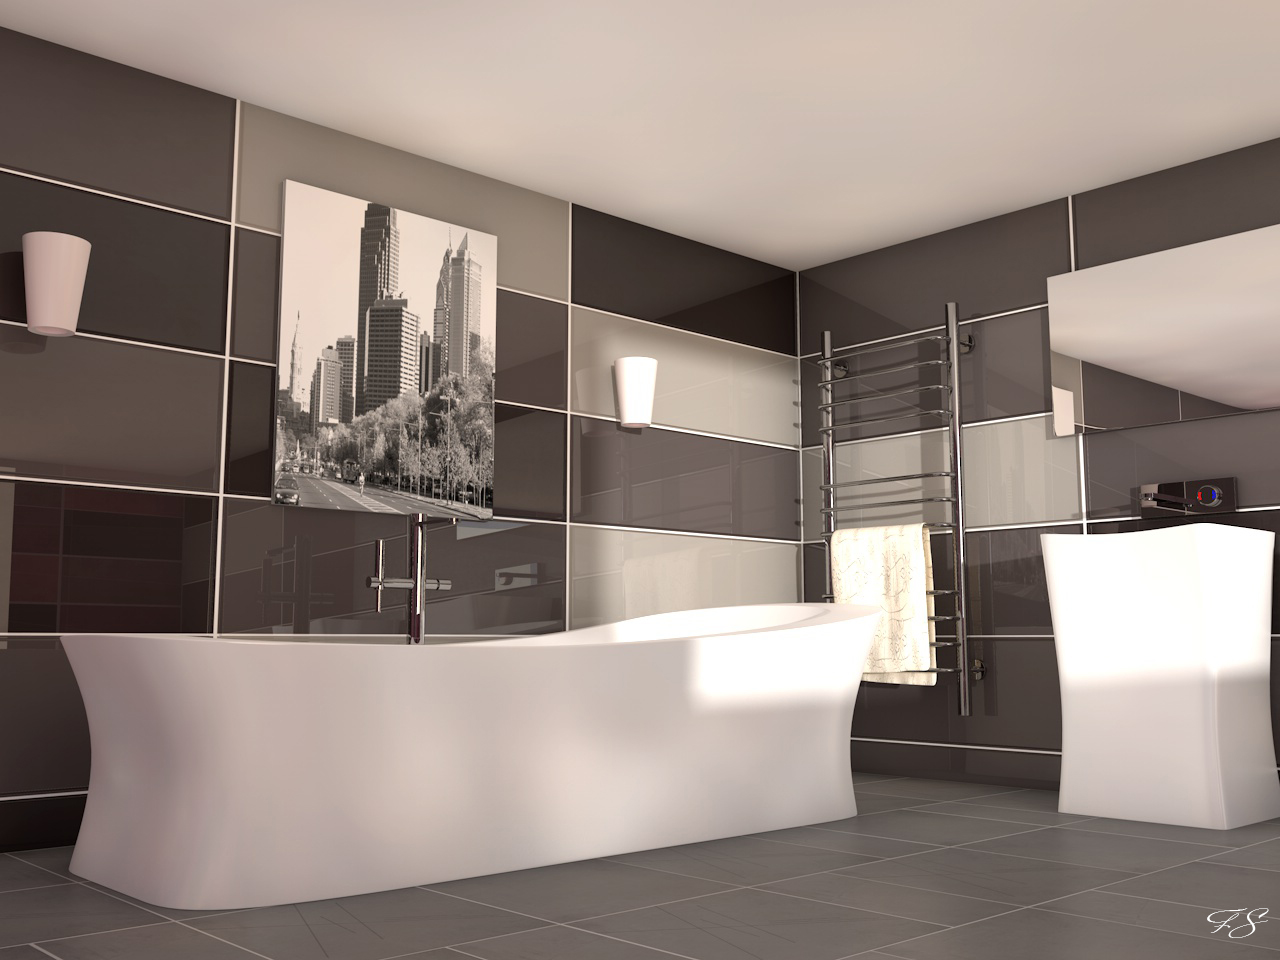 salle de bain orientale design avec des. Black Bedroom Furniture Sets. Home Design Ideas